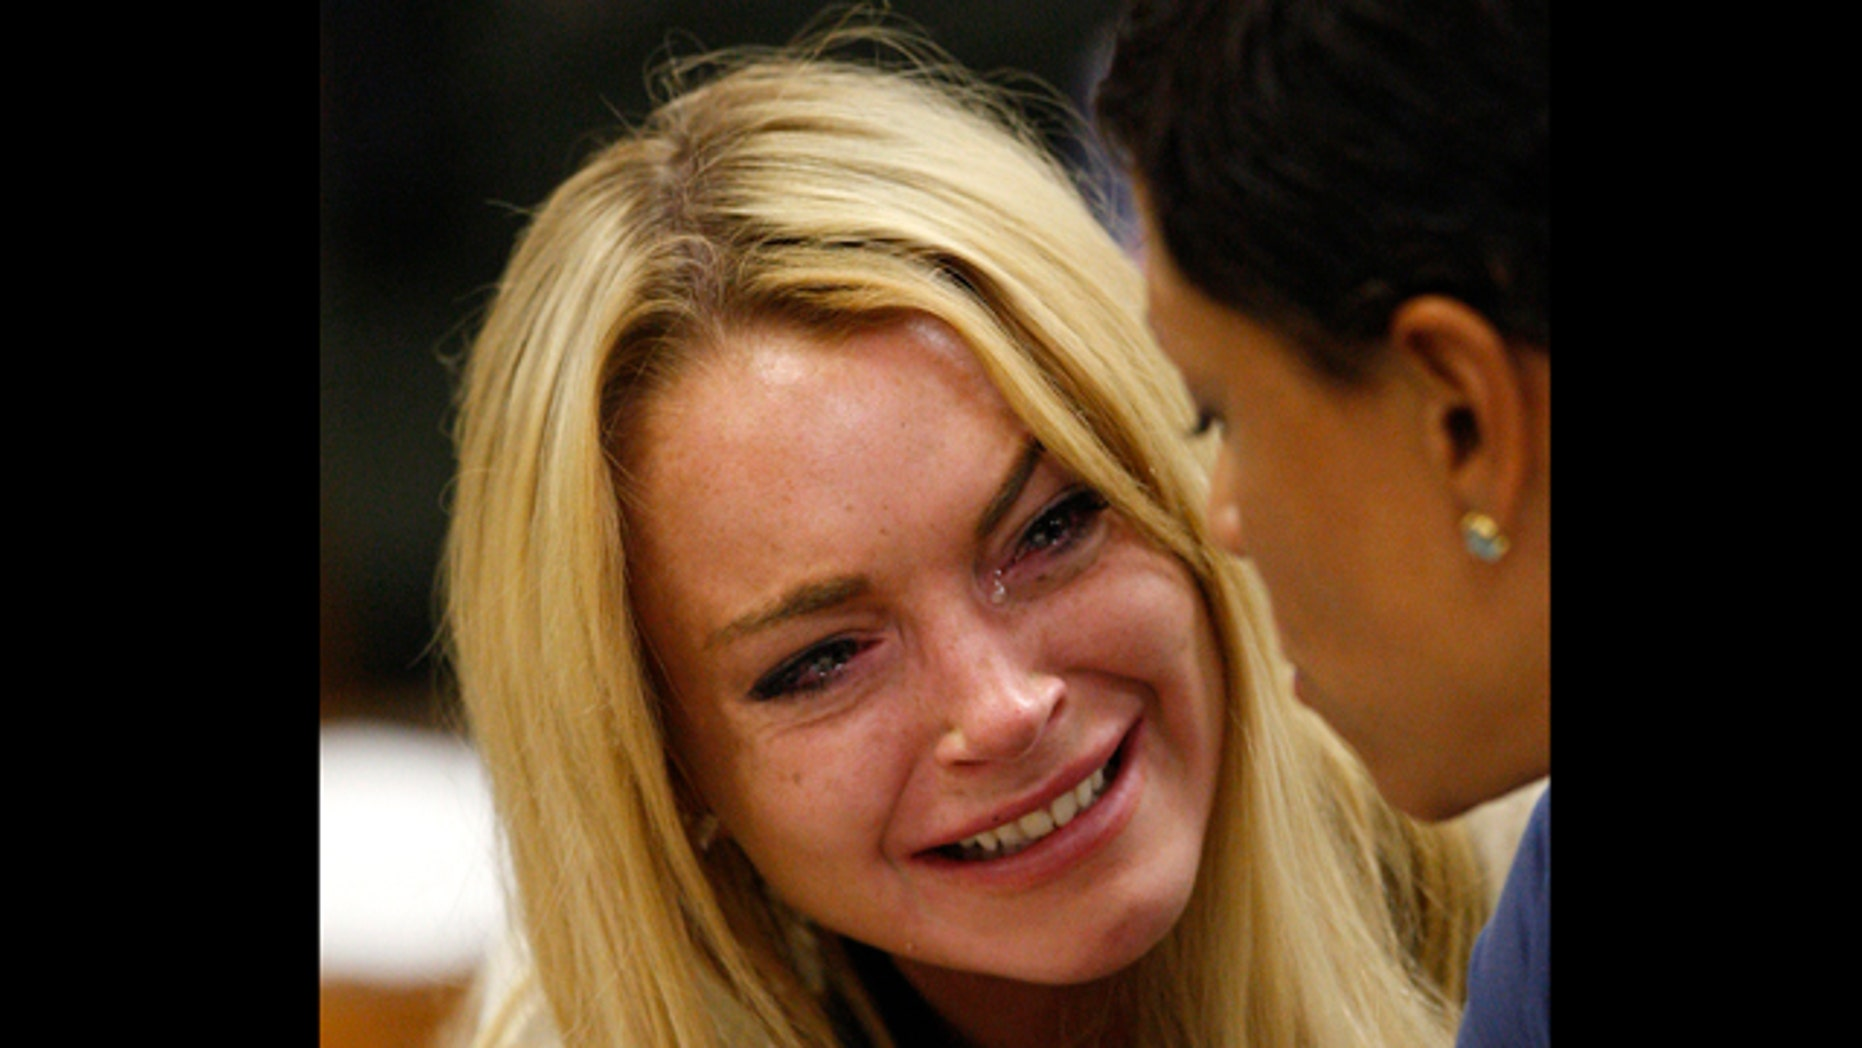 July 6: Actress Lindsay Lohan reacts after the sentencing by Superior Court Judge Marsha Reve during a hearing in Beverly Hills, Calif.